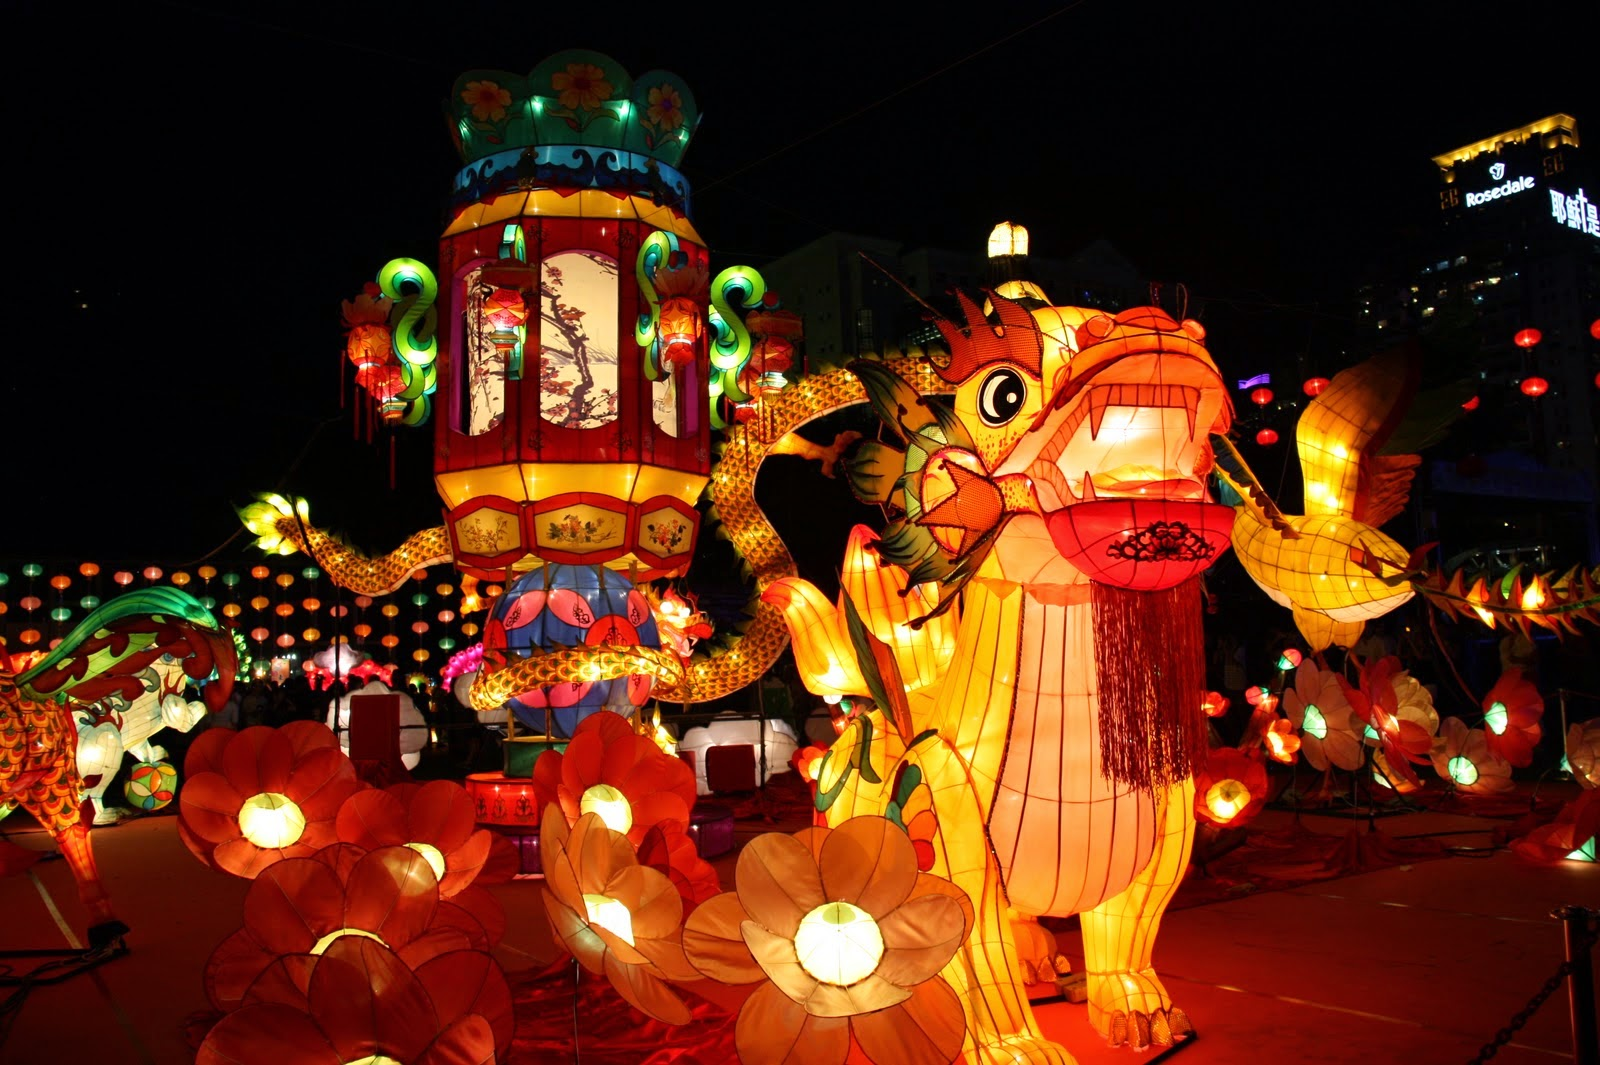 How Do Legend and Seasonal Change Combine to Make the Mid-autumn Festival?